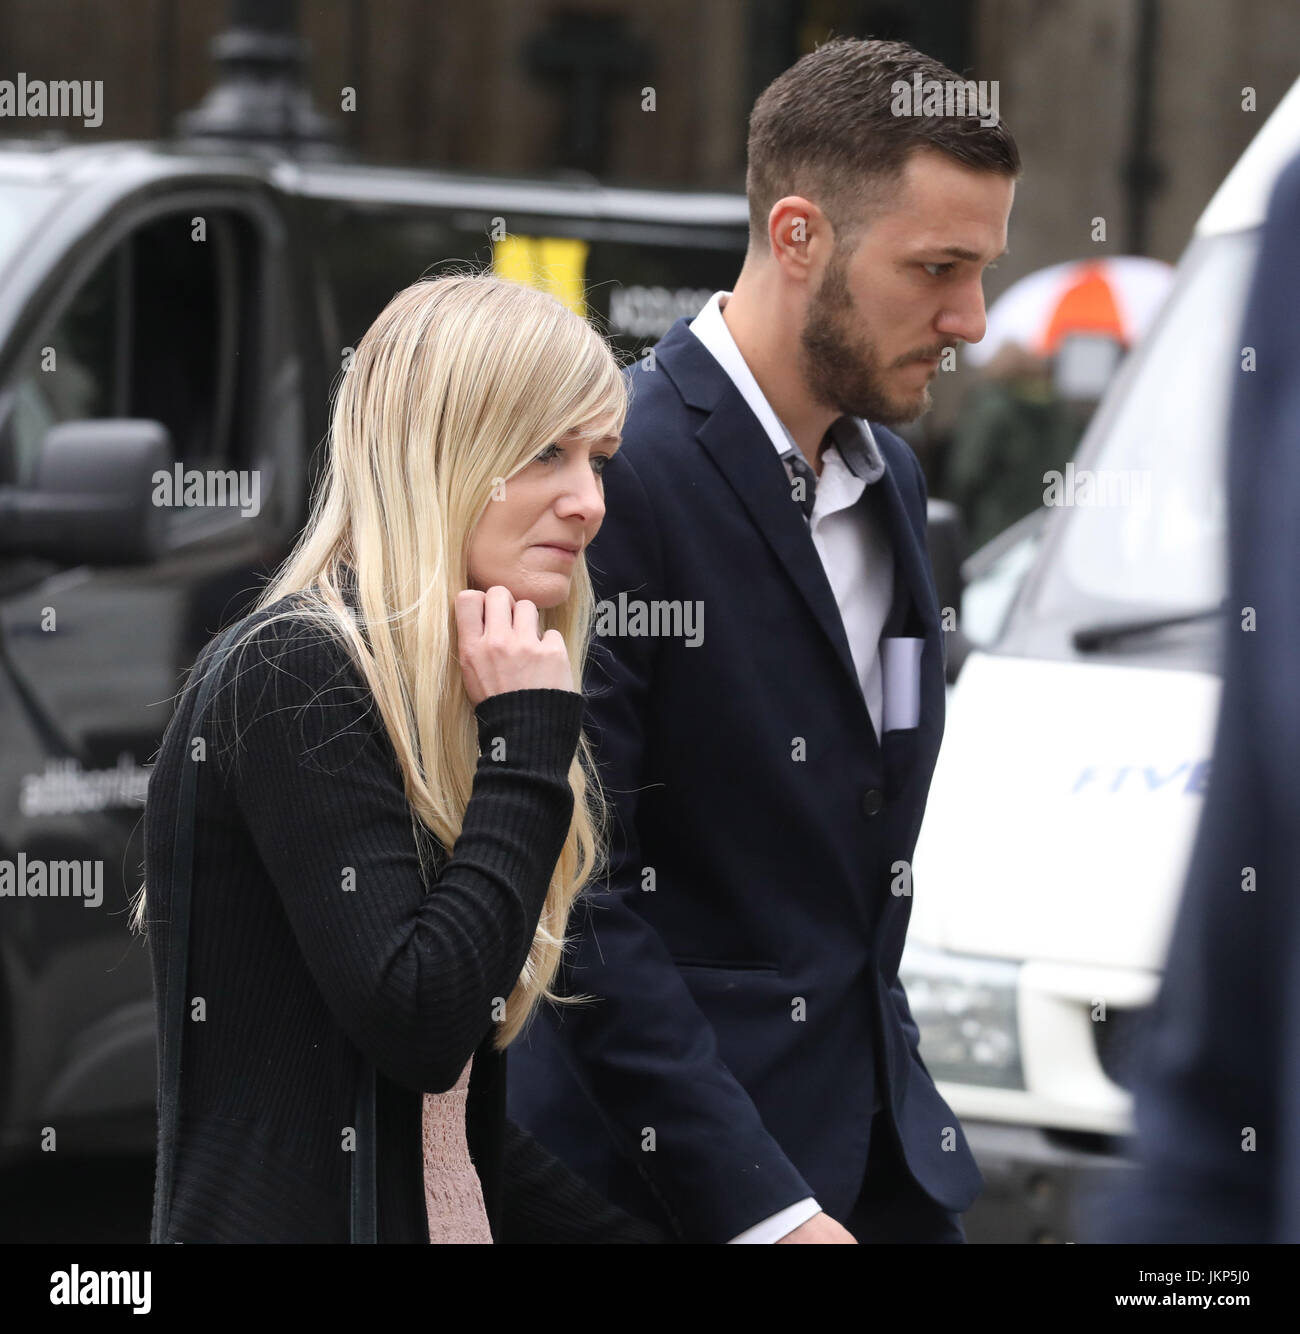 London, UK. 24th July, 2017. Pic shows:  24.7.17 High Court London Charlie Gard parents Connie Yates and Chris Gard Stock Photo